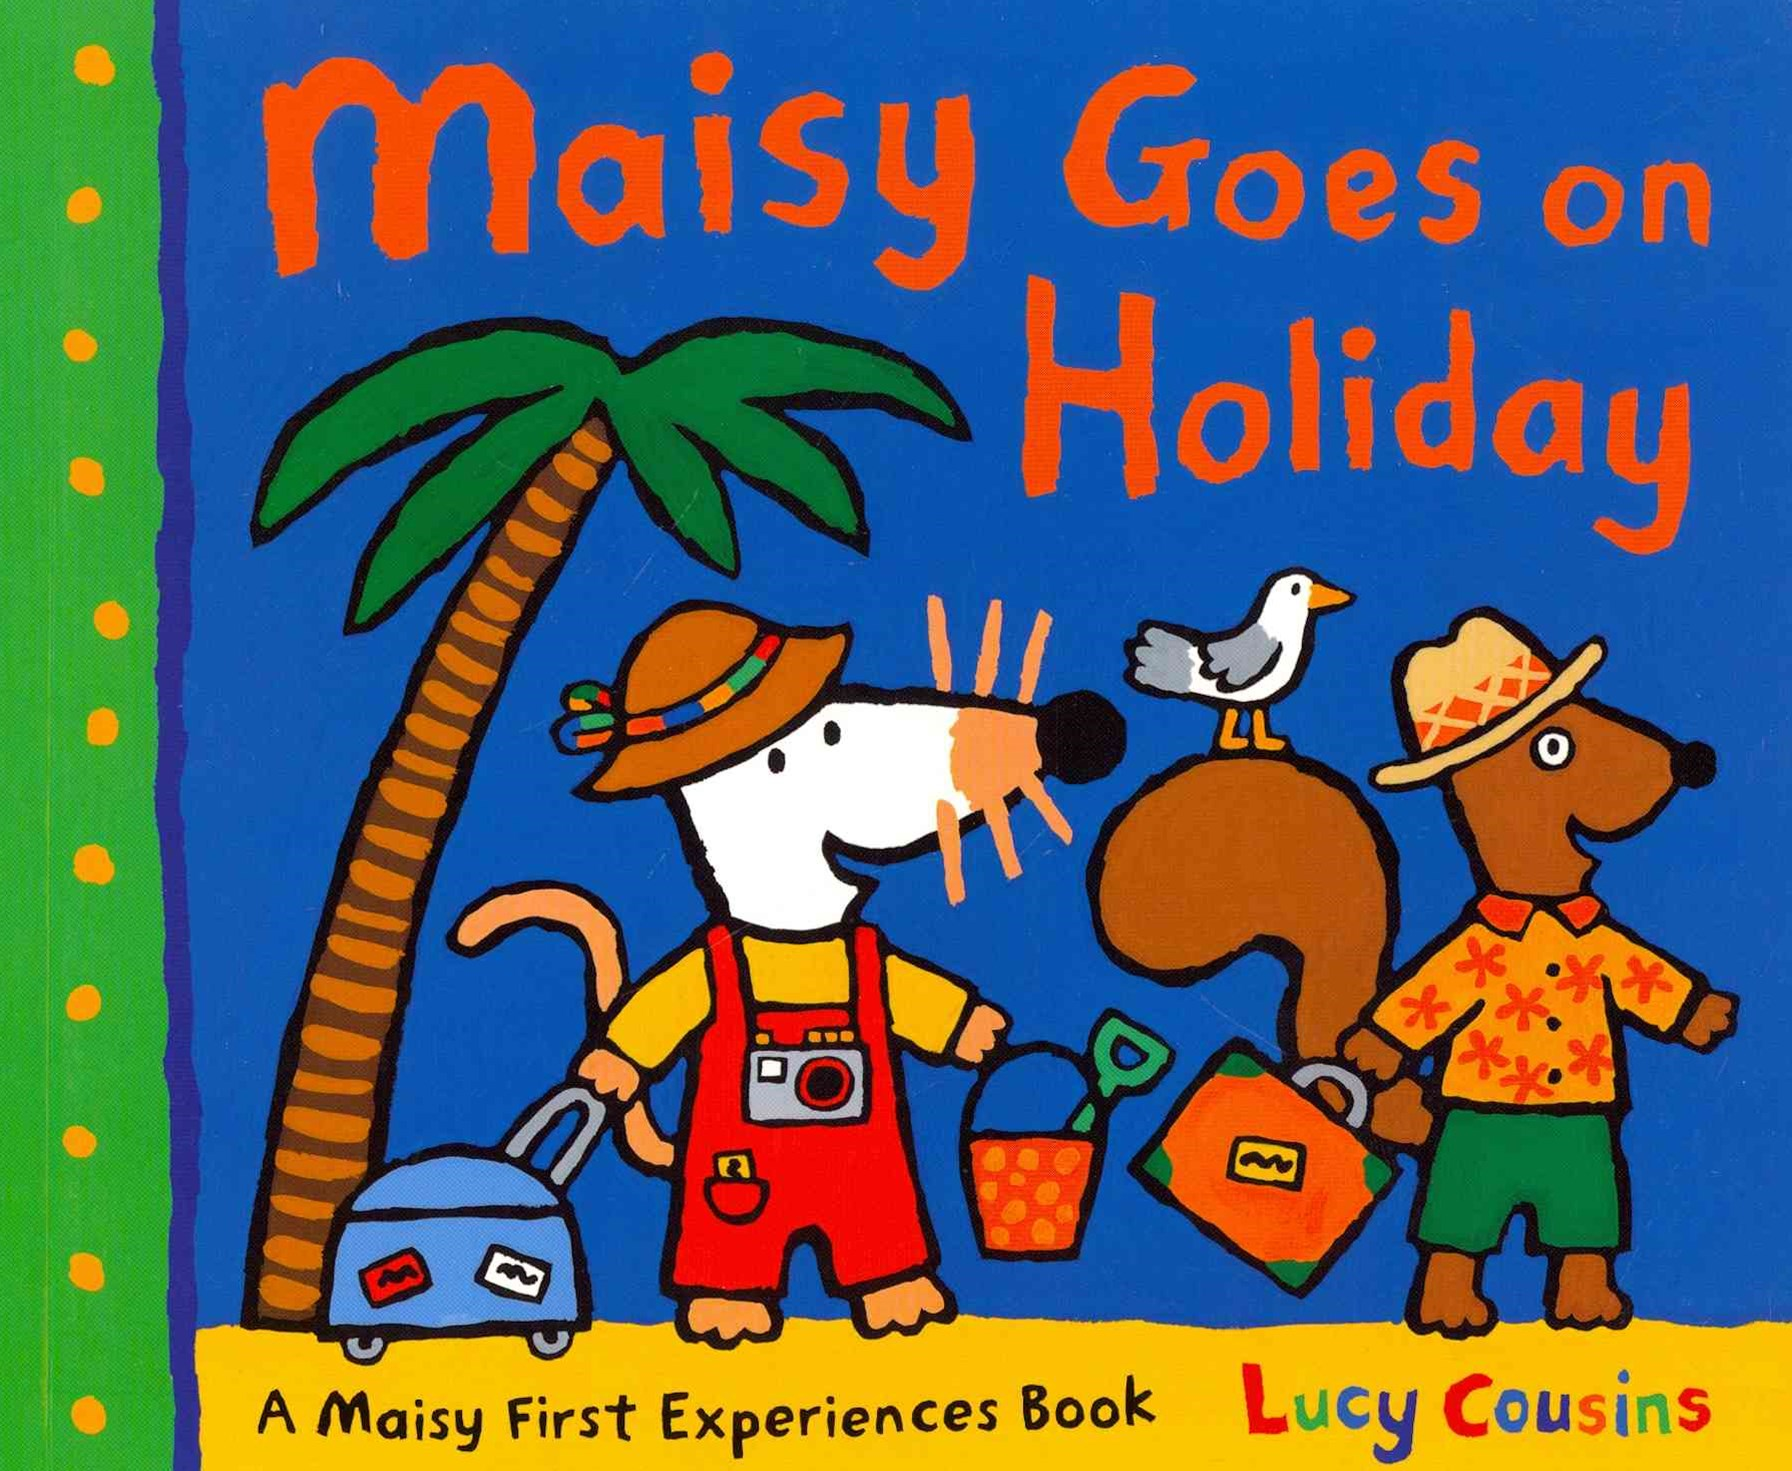 Maisy Goes on Holiday